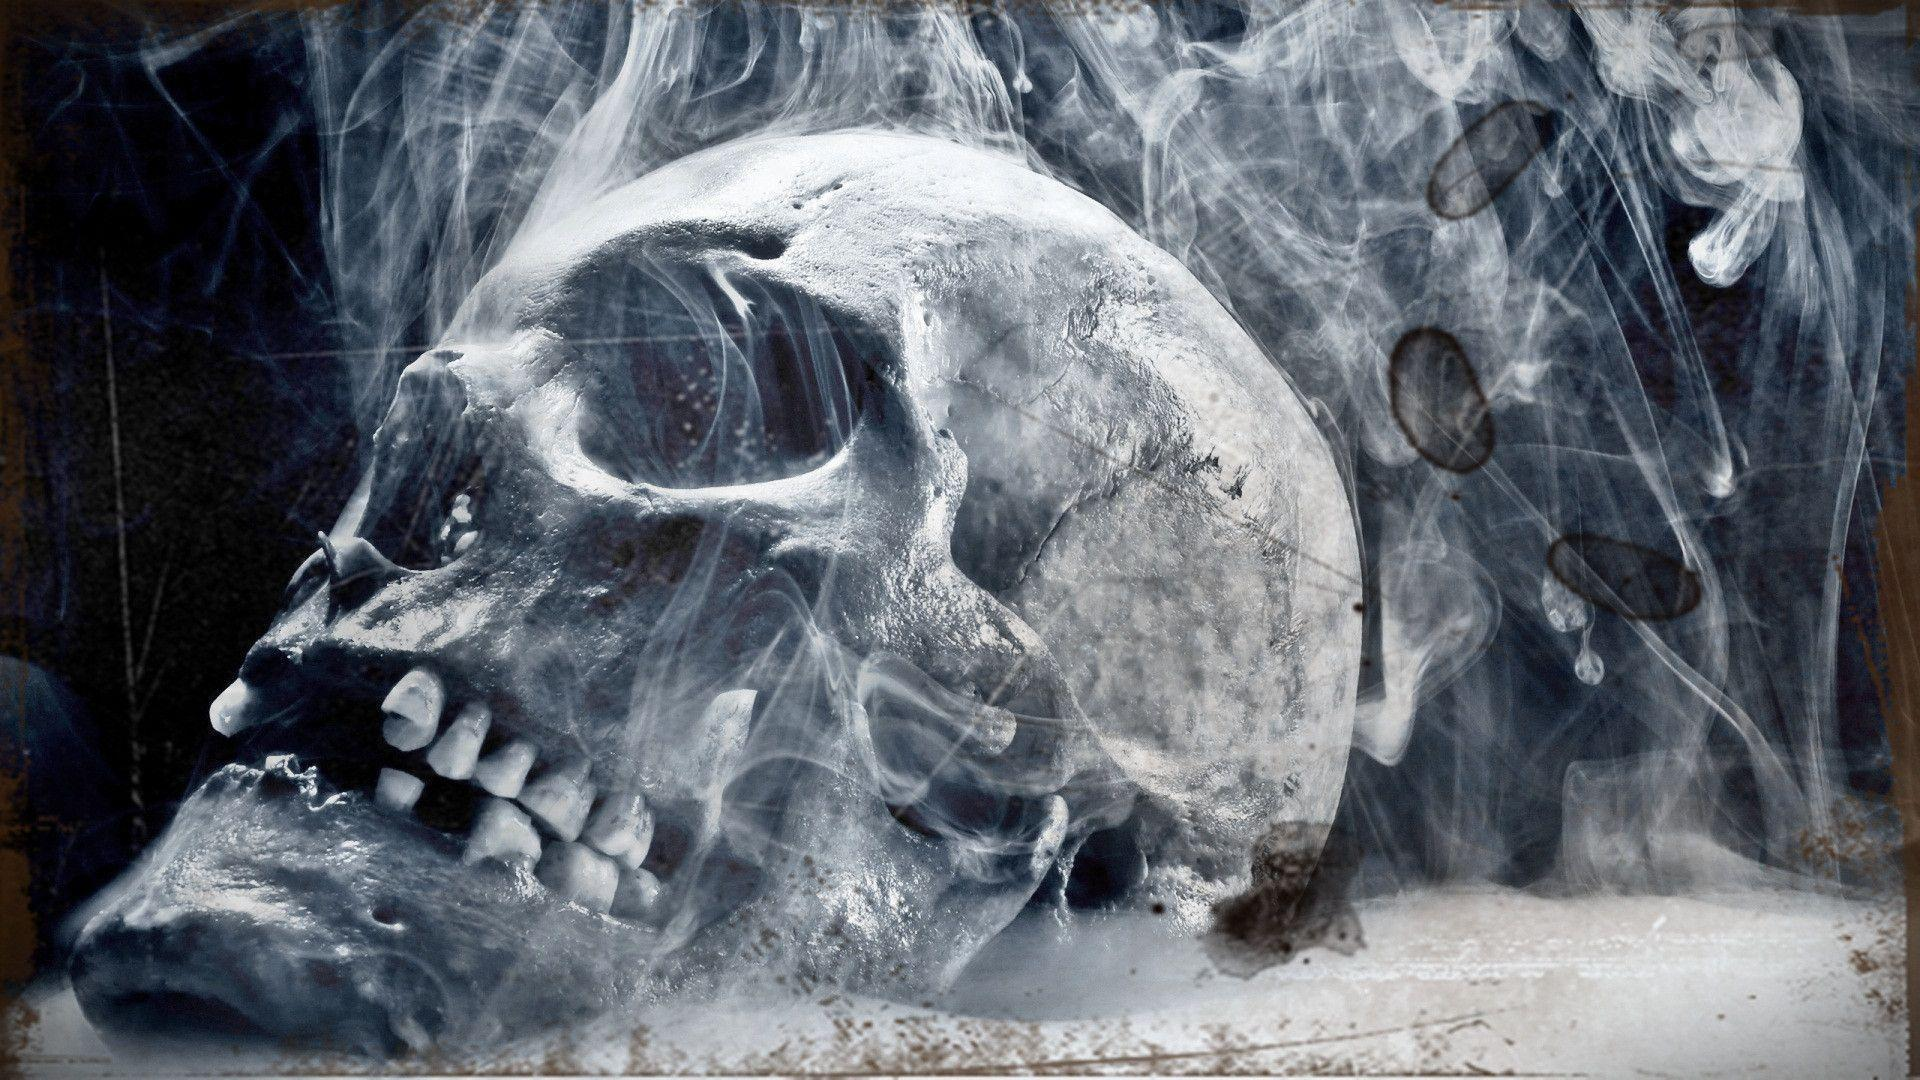 3D Skull HD Wallpaper | Windows 8 Wallpaper